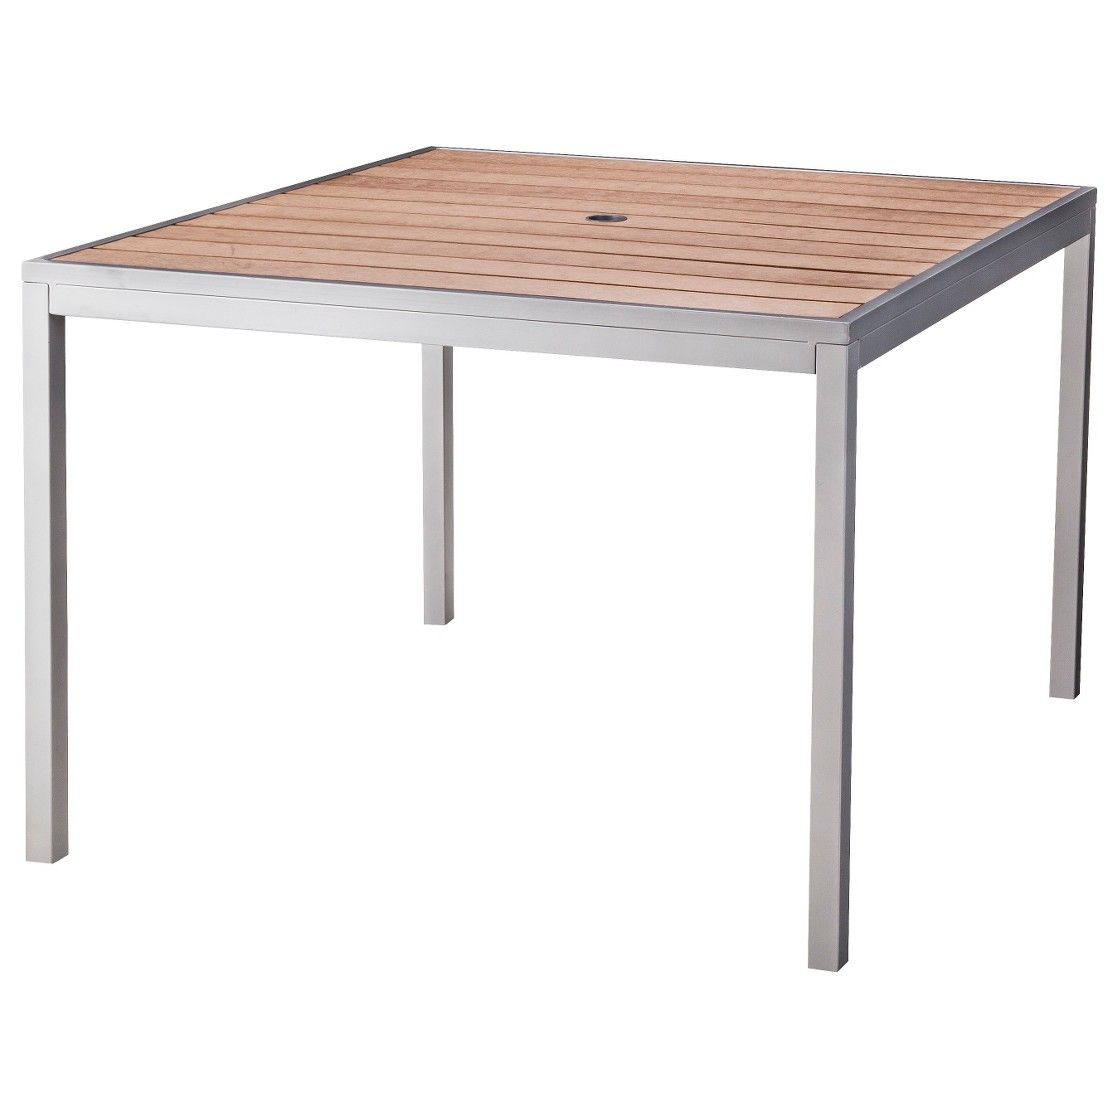 Threshold Bryant Faux Wood Square Patio Dining Table Outdoor - Square wood outdoor dining table